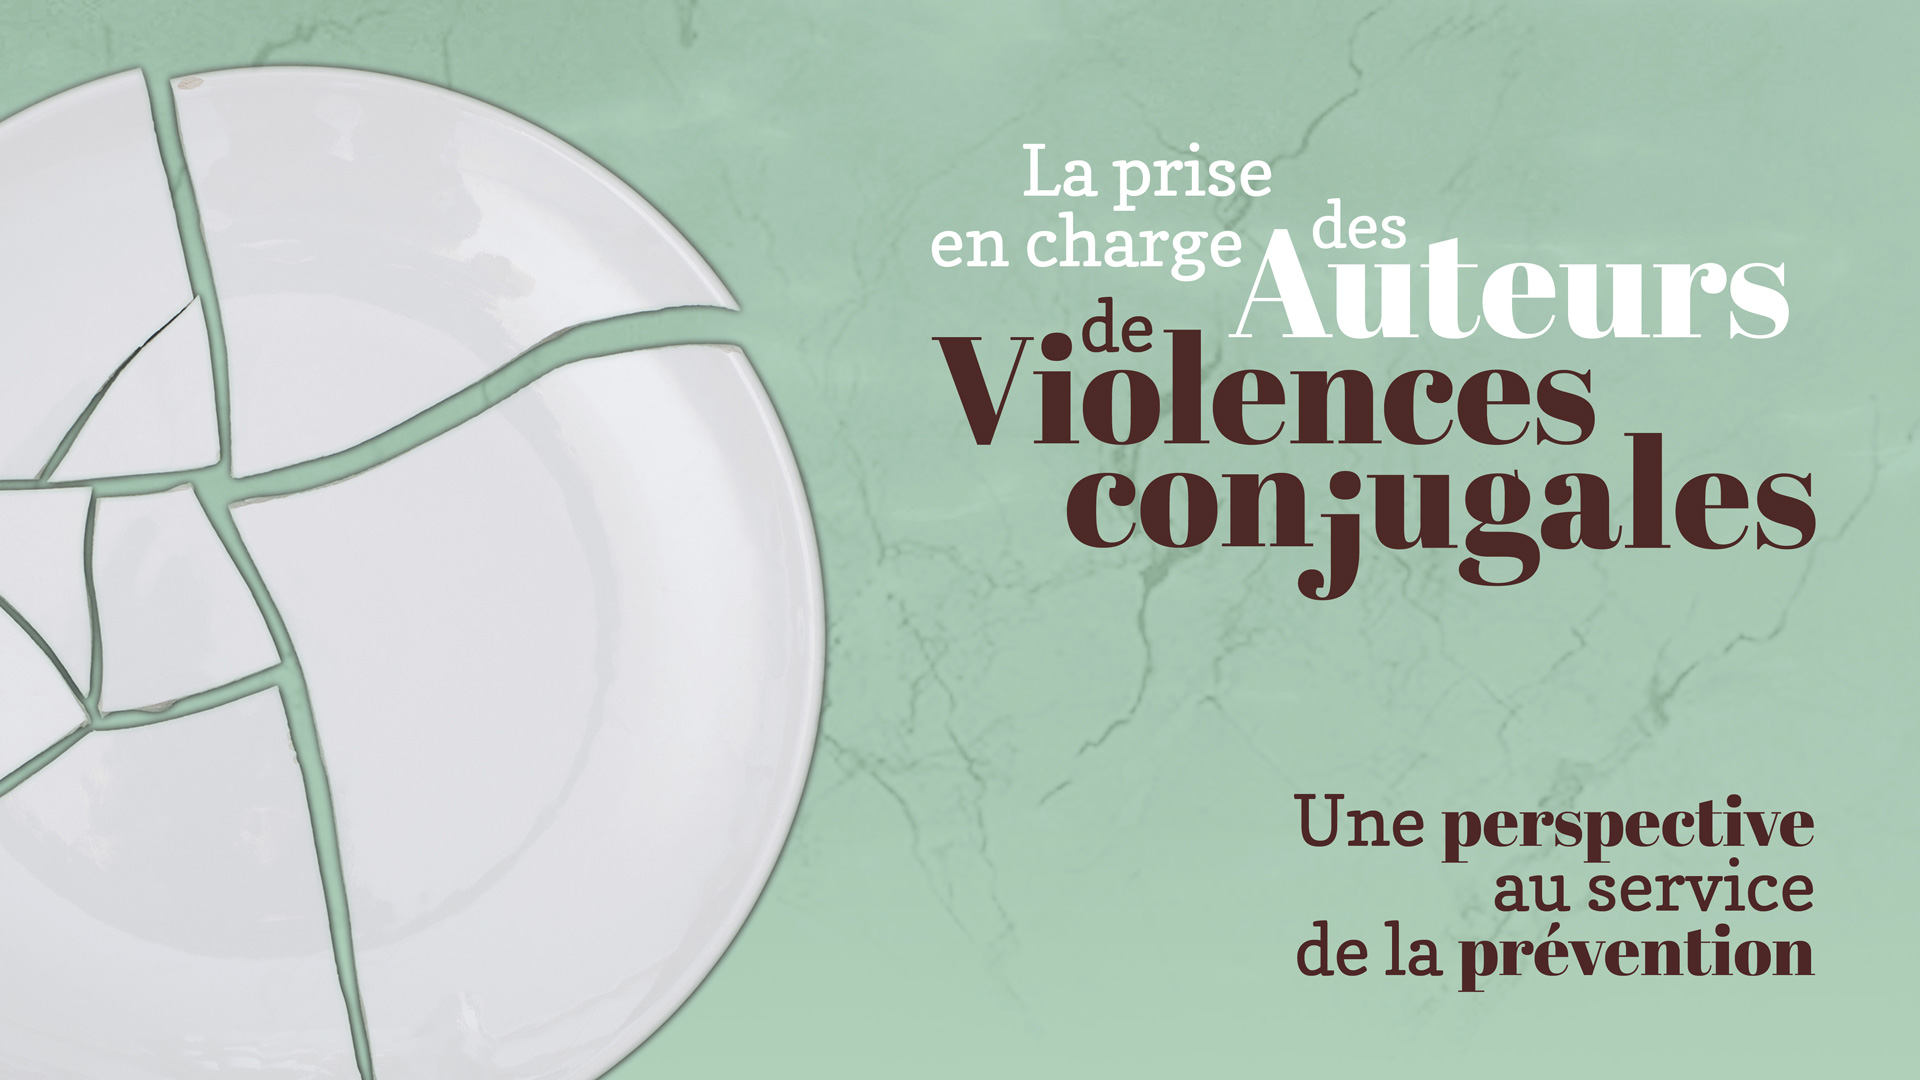 25 octobre 2018, Prise en charge des auteurs de violences conjugales